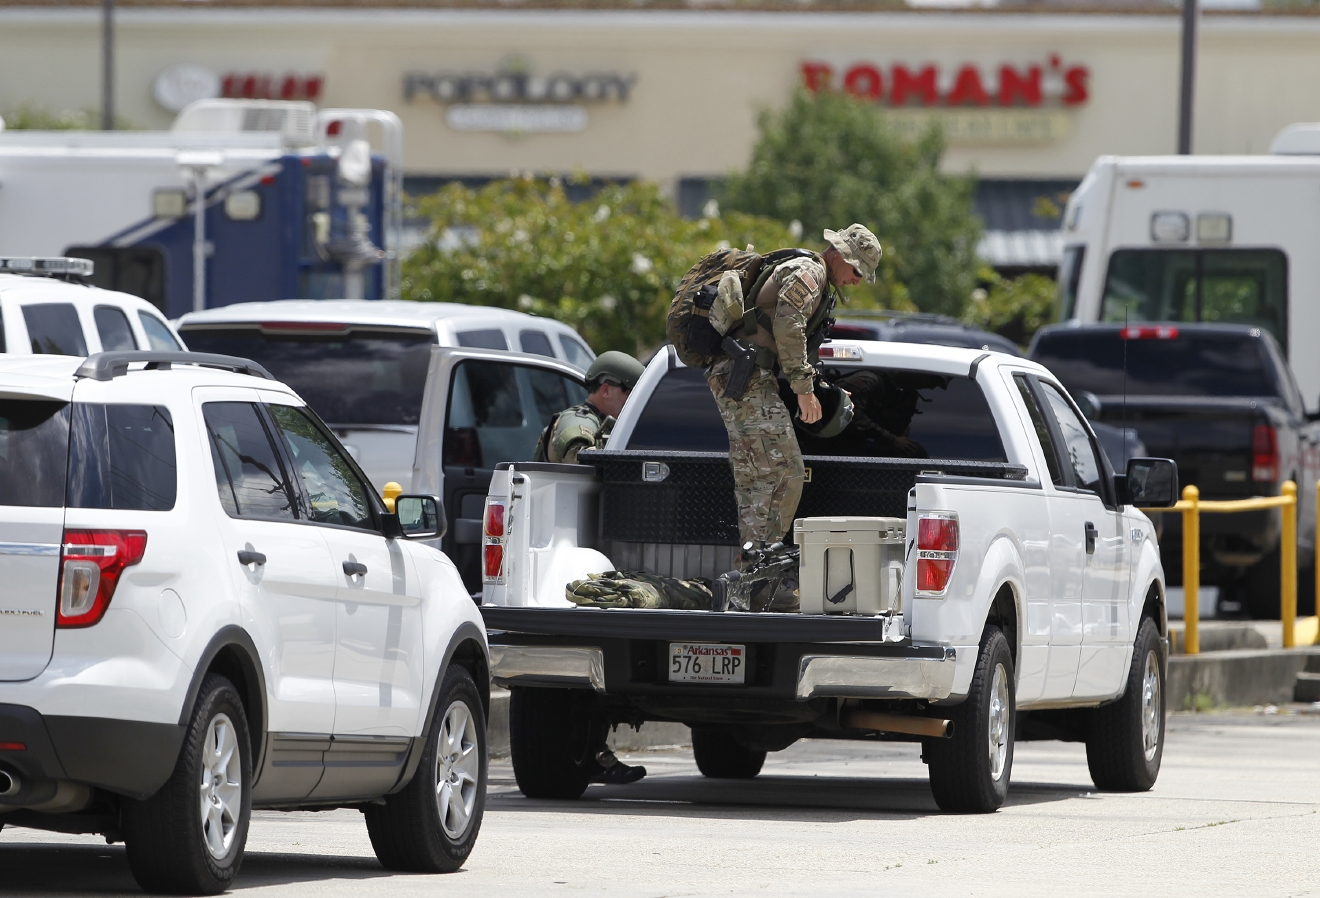 A police officer in tactical gear sets up in a parking lot while responding a police shooting near Old Hammond Highway and Drusilla Lane in Baton Rouge on Sunday, July 17, 2016. Multiple law enforcement officers were killed and wounded Sunday morning in a shooting near a gas station in Baton Rouge, less than two weeks after a black man was shot and killed by police here, sparking nightly protests across the city. (Chris Grange/NOLA.com The Times-Picayune via AP)